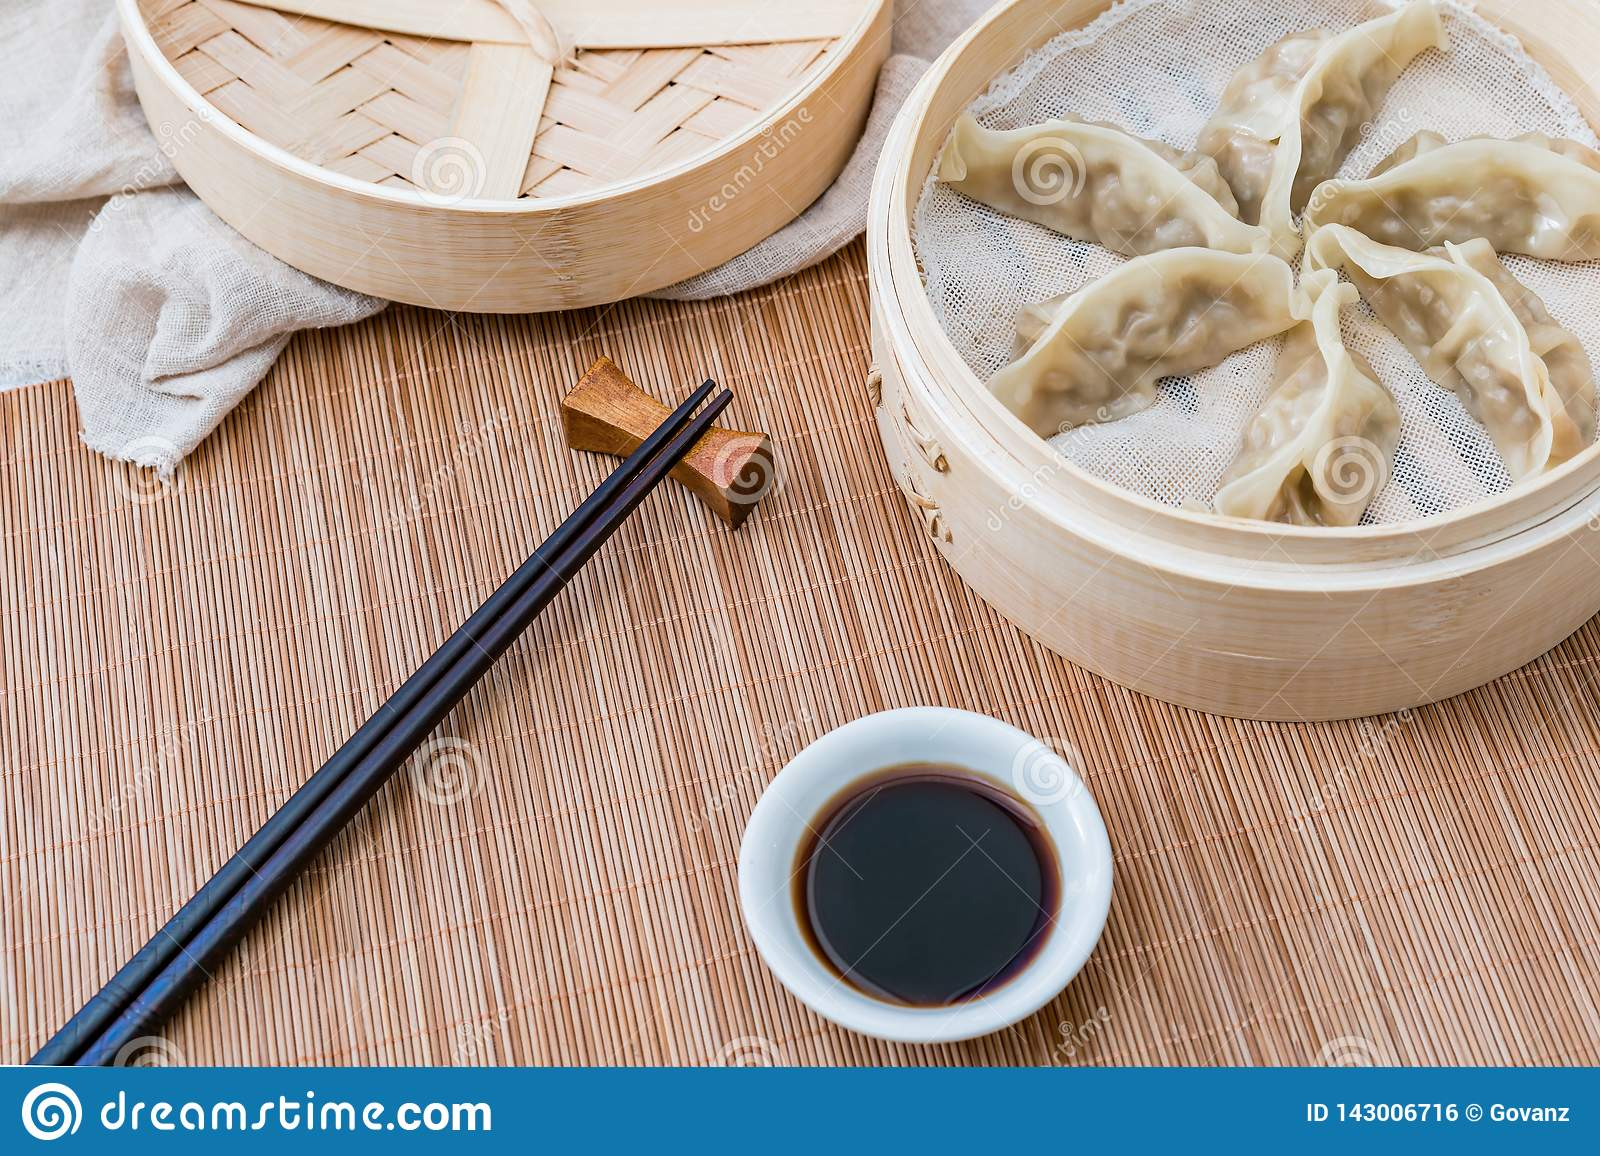 A cage of steamed dumplings, a traditional Chinese delicacy